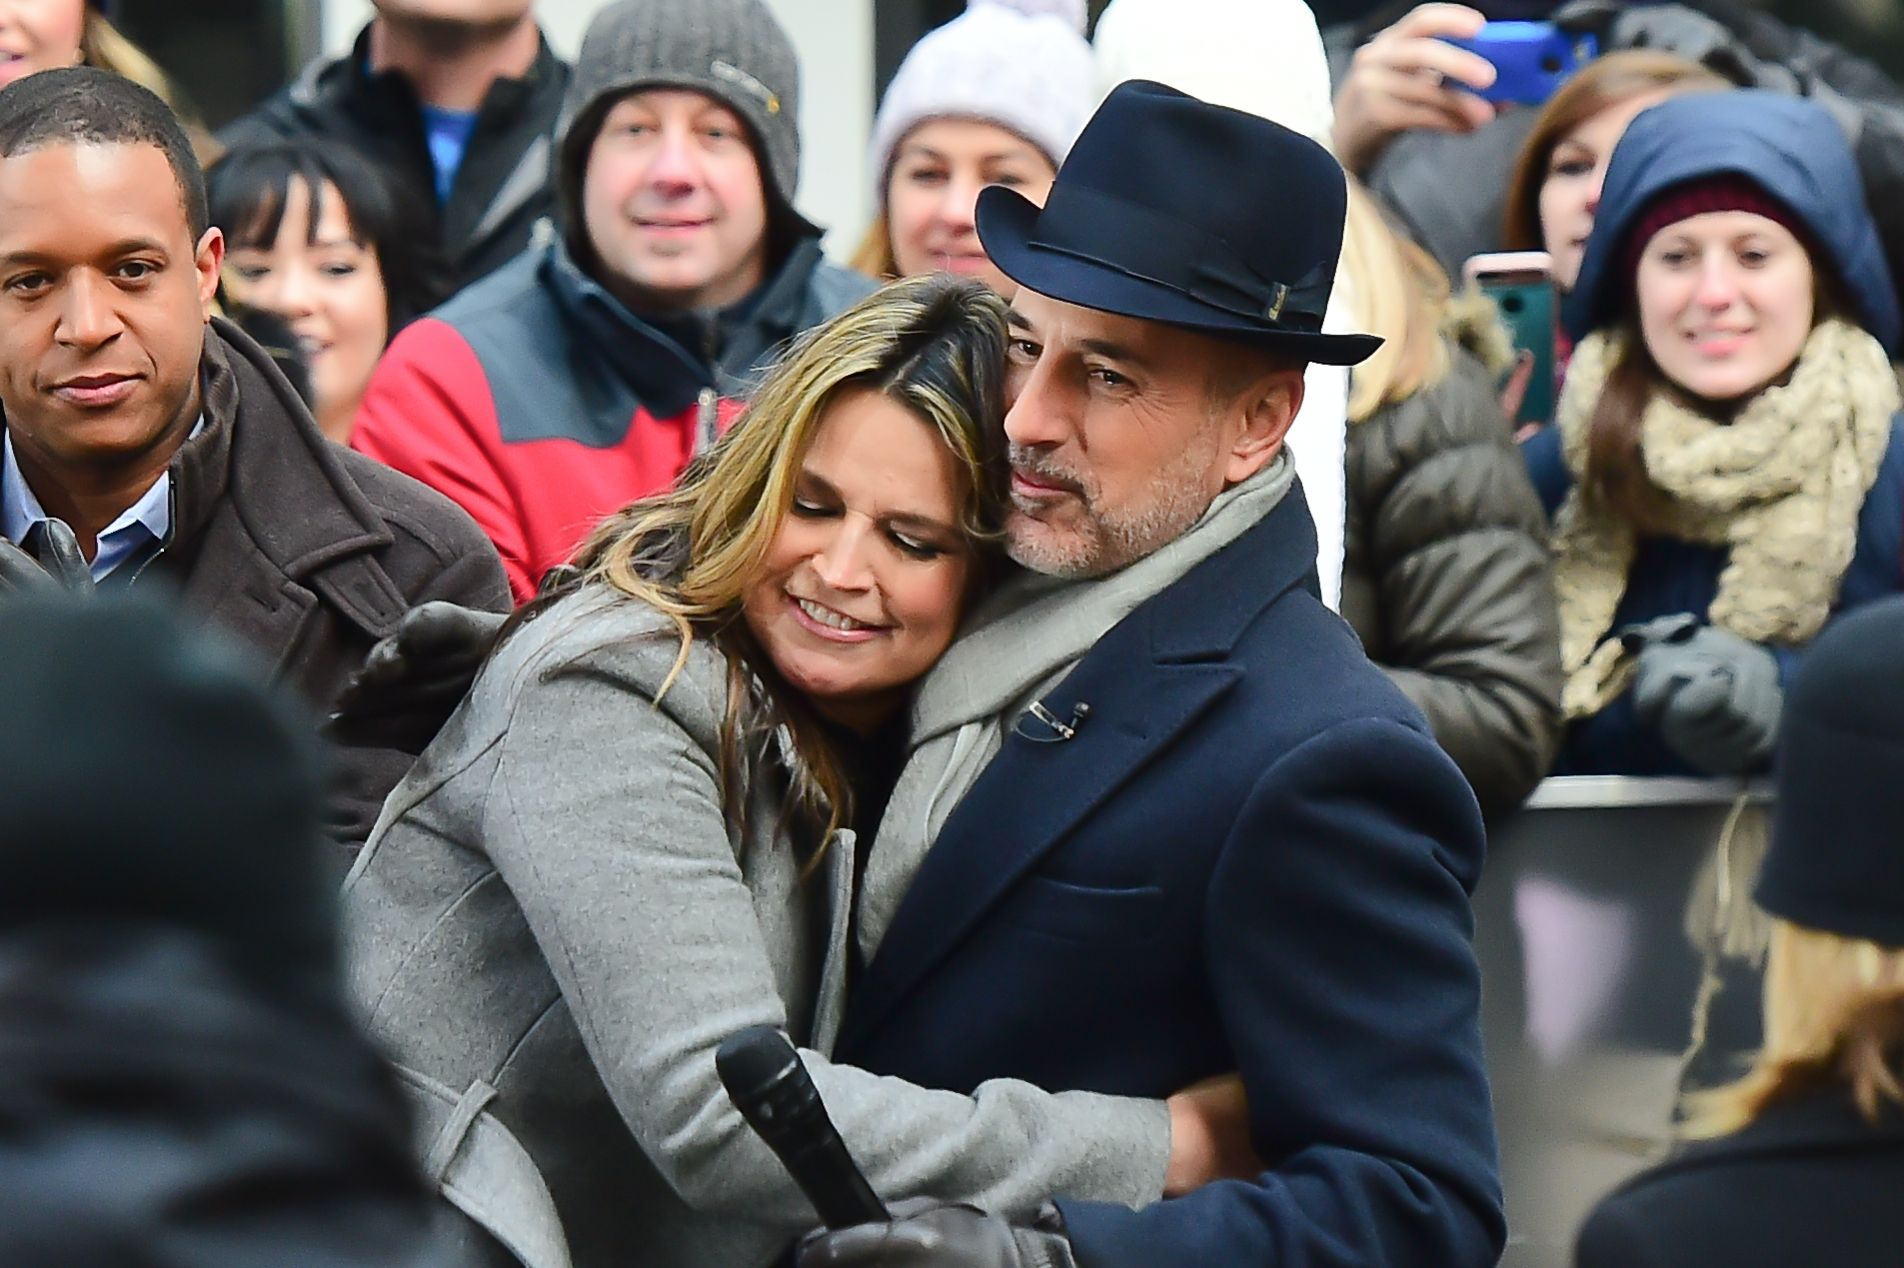 """Matt Lauer, Savannah Guthrie on the set of the """"Today Show""""on January 6, 2017 in New York City. 